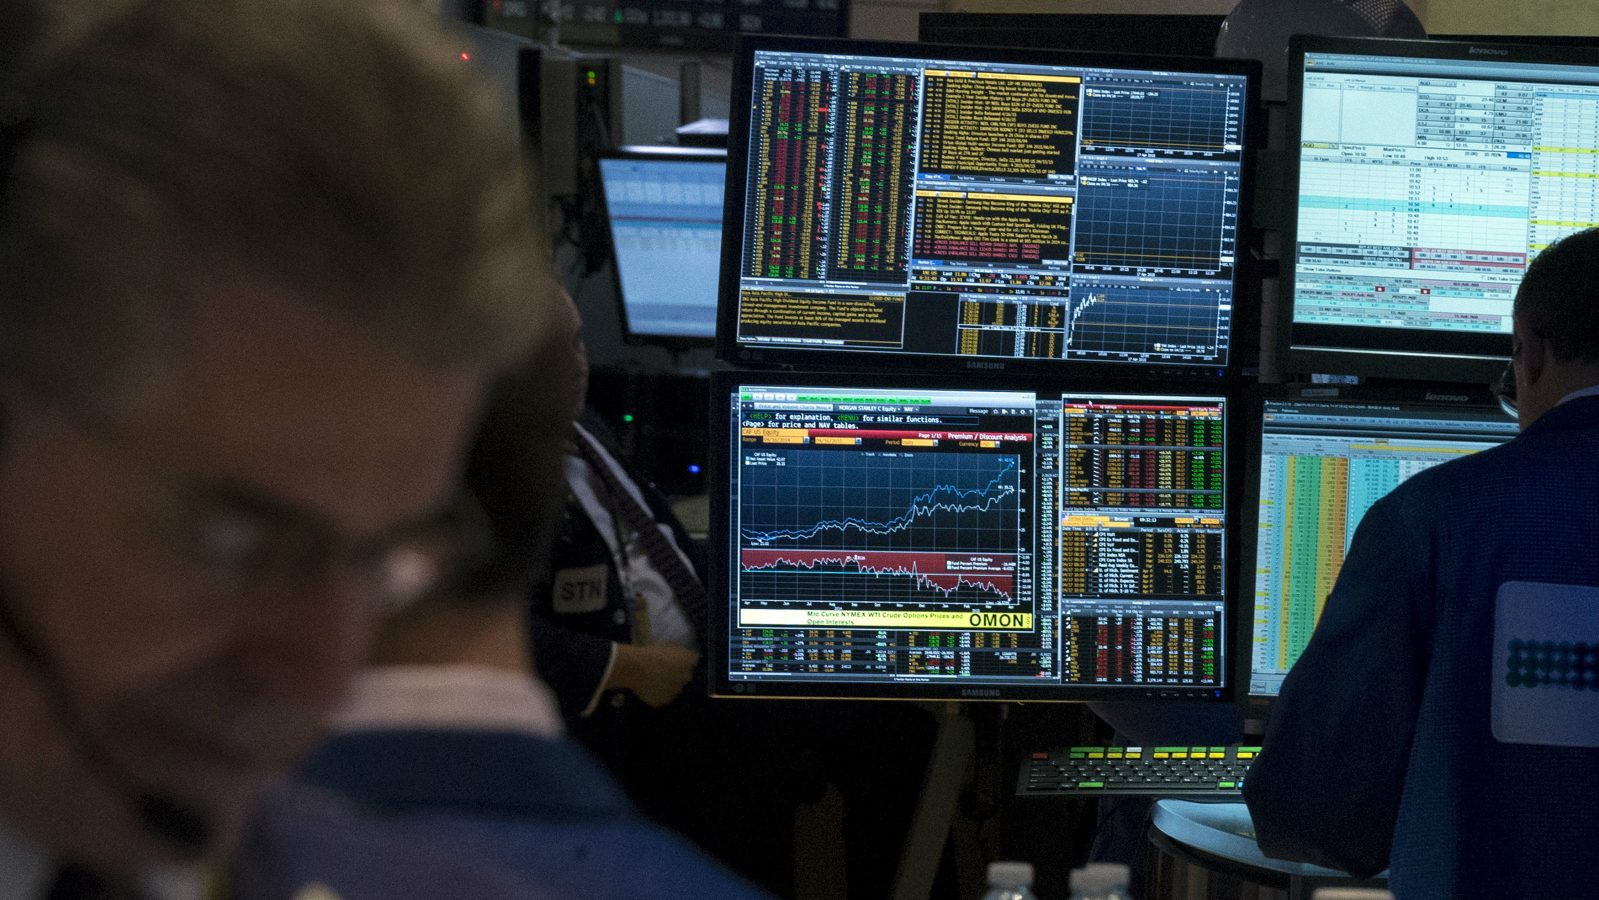 A Bloomberg terminal is seen inside a kiosk on the floor of the New York Stock Exchange April 17, 2015. An outage at news and market data provider Bloomberg LP hit financial markets around the world on Friday, prompting debt sales to be postponed and exacerbating a spike in volatility in European stocks.